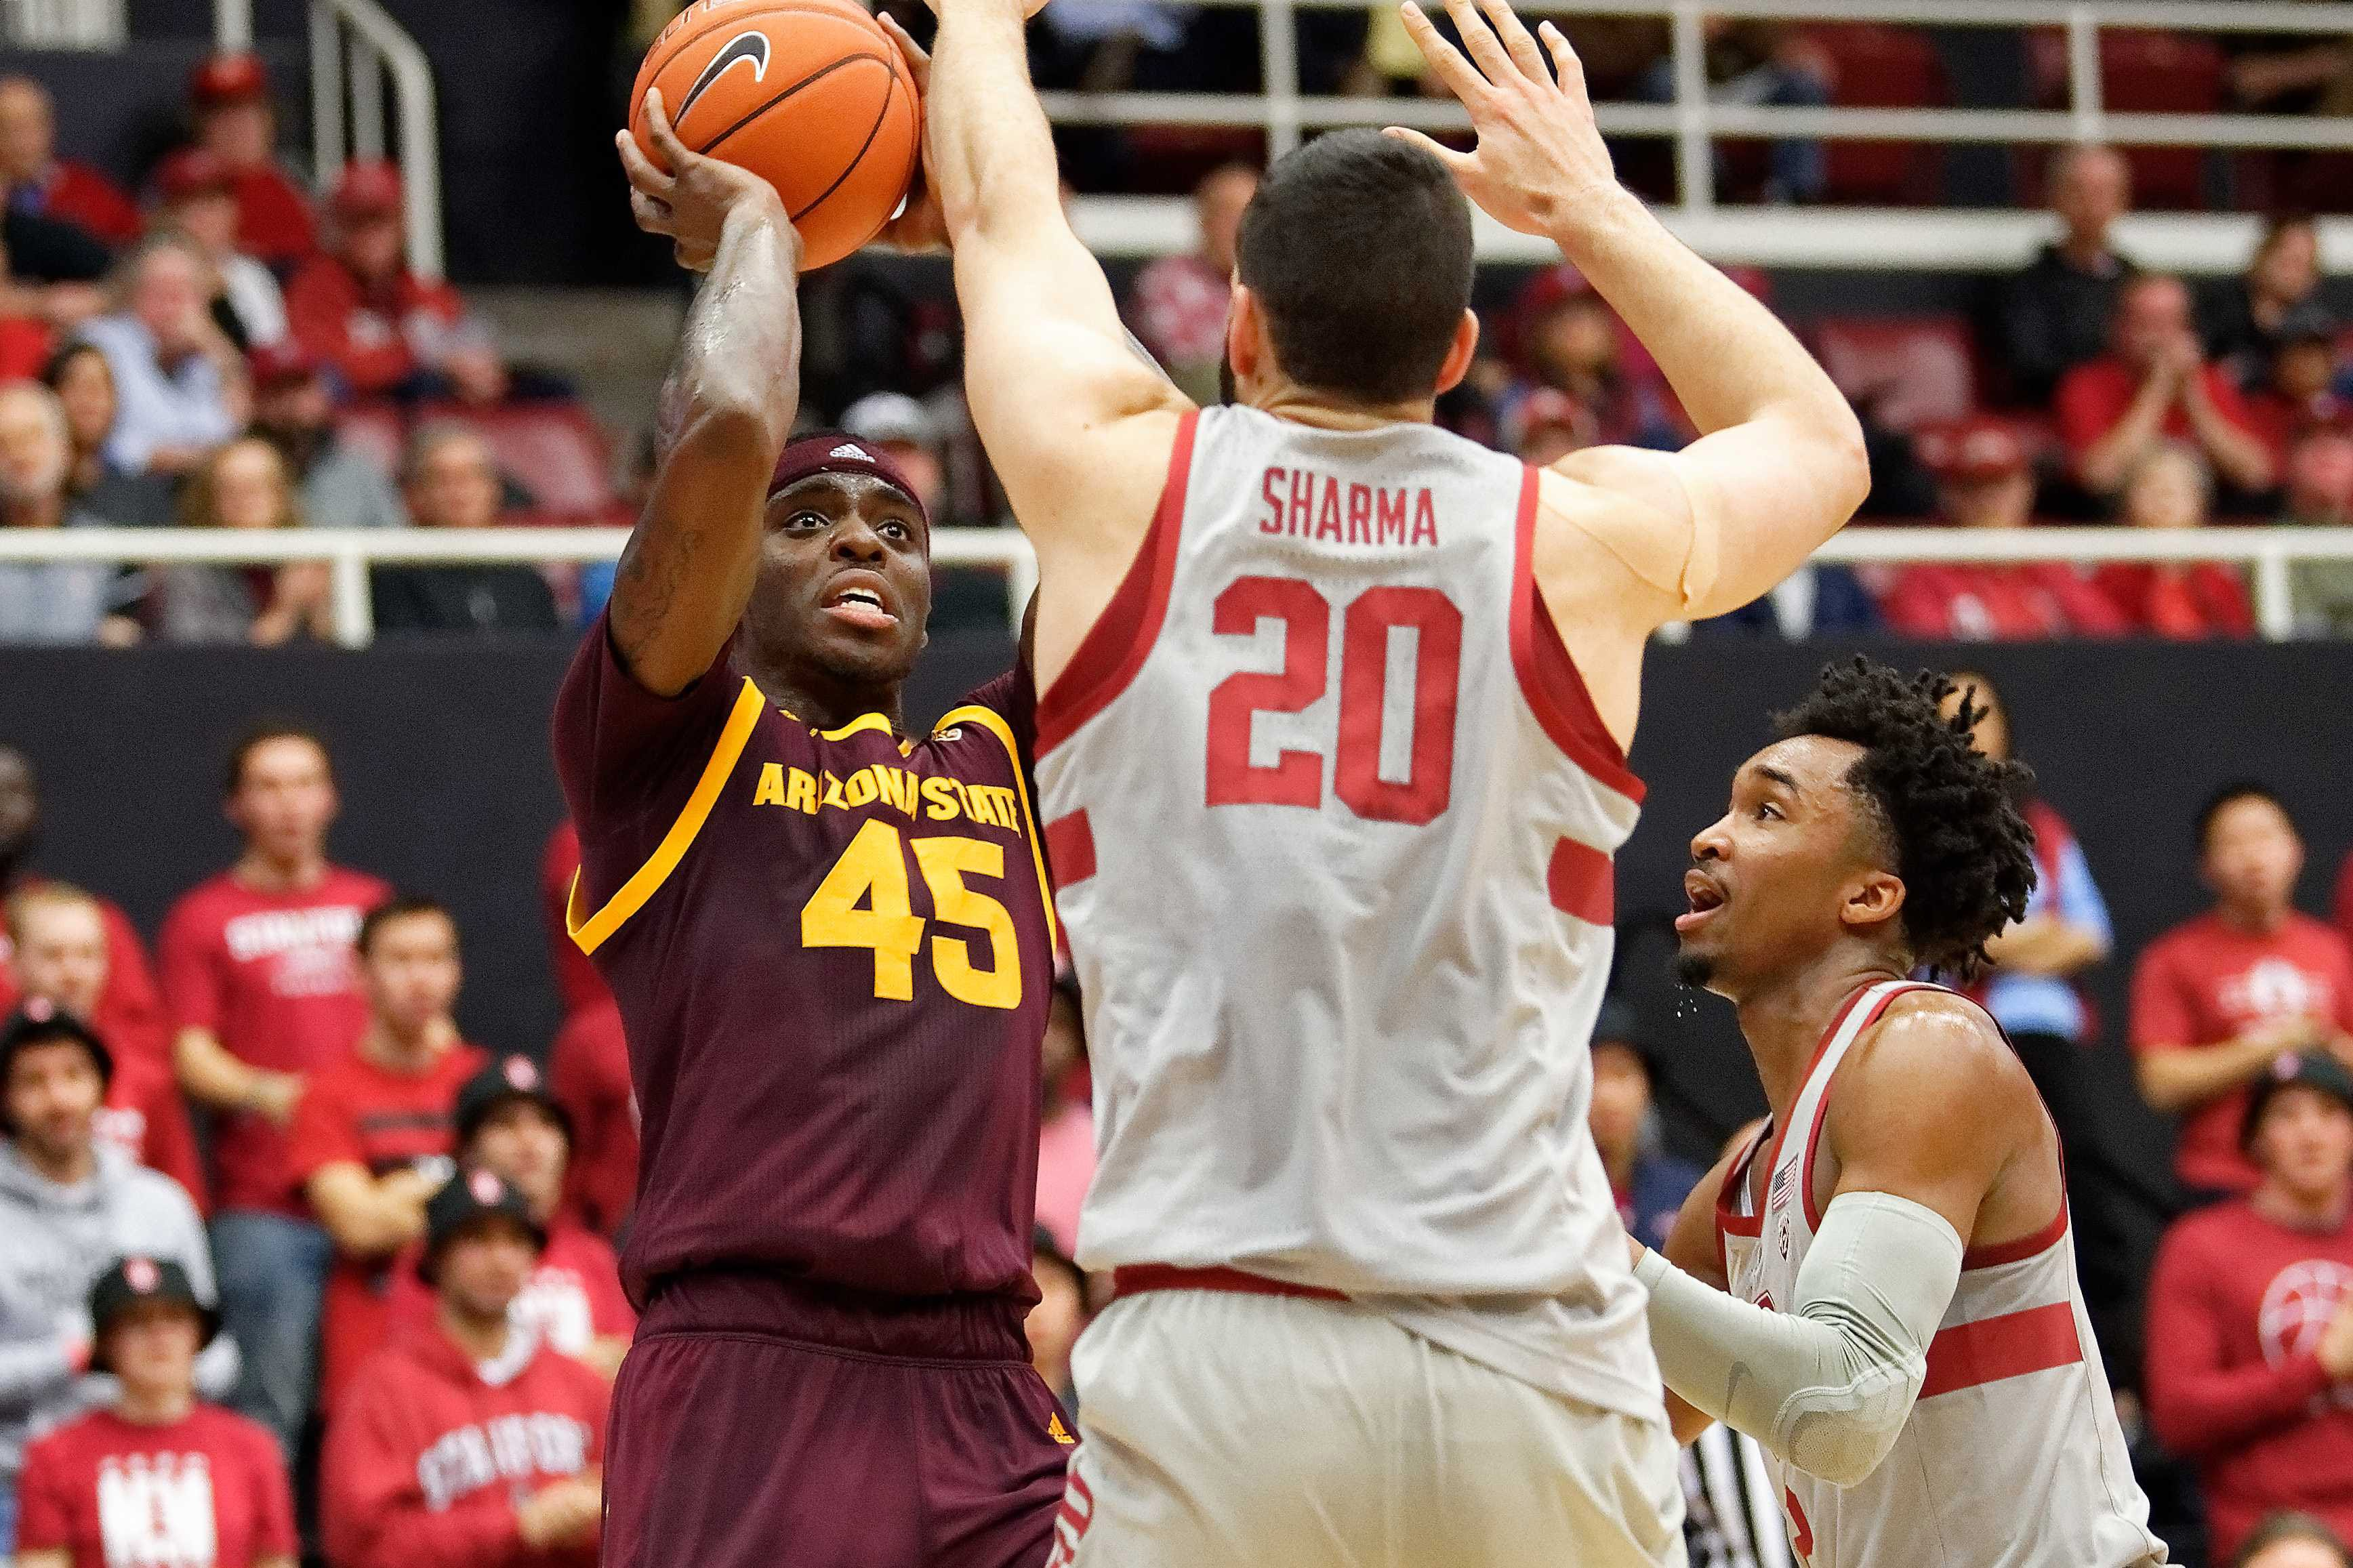 Zylan Cheatham plays after brother's funeral, but ASU falls at Stanford